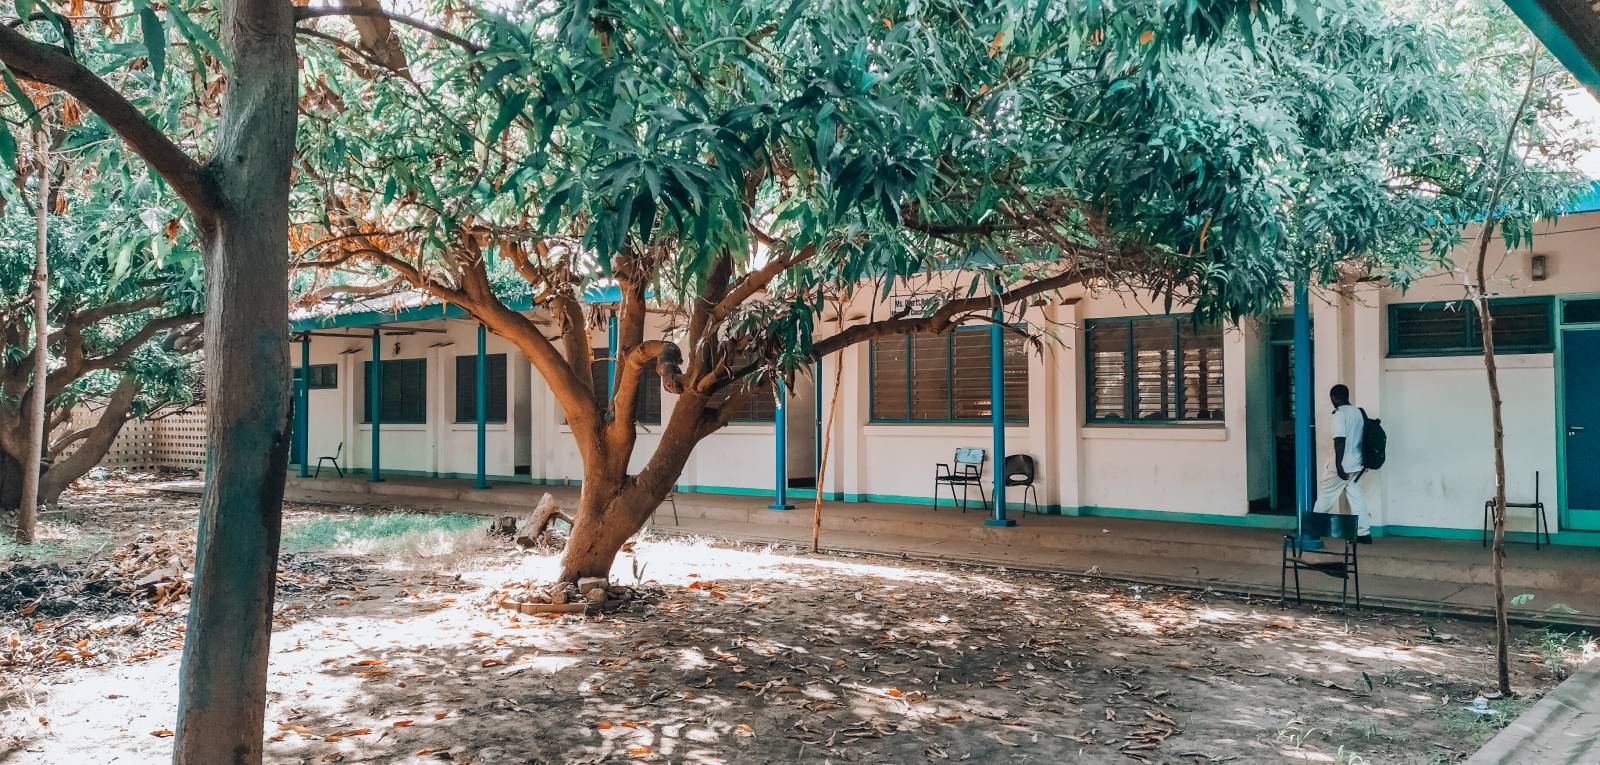 Overview of the inner courtyard of the Nursing College in Banjul.